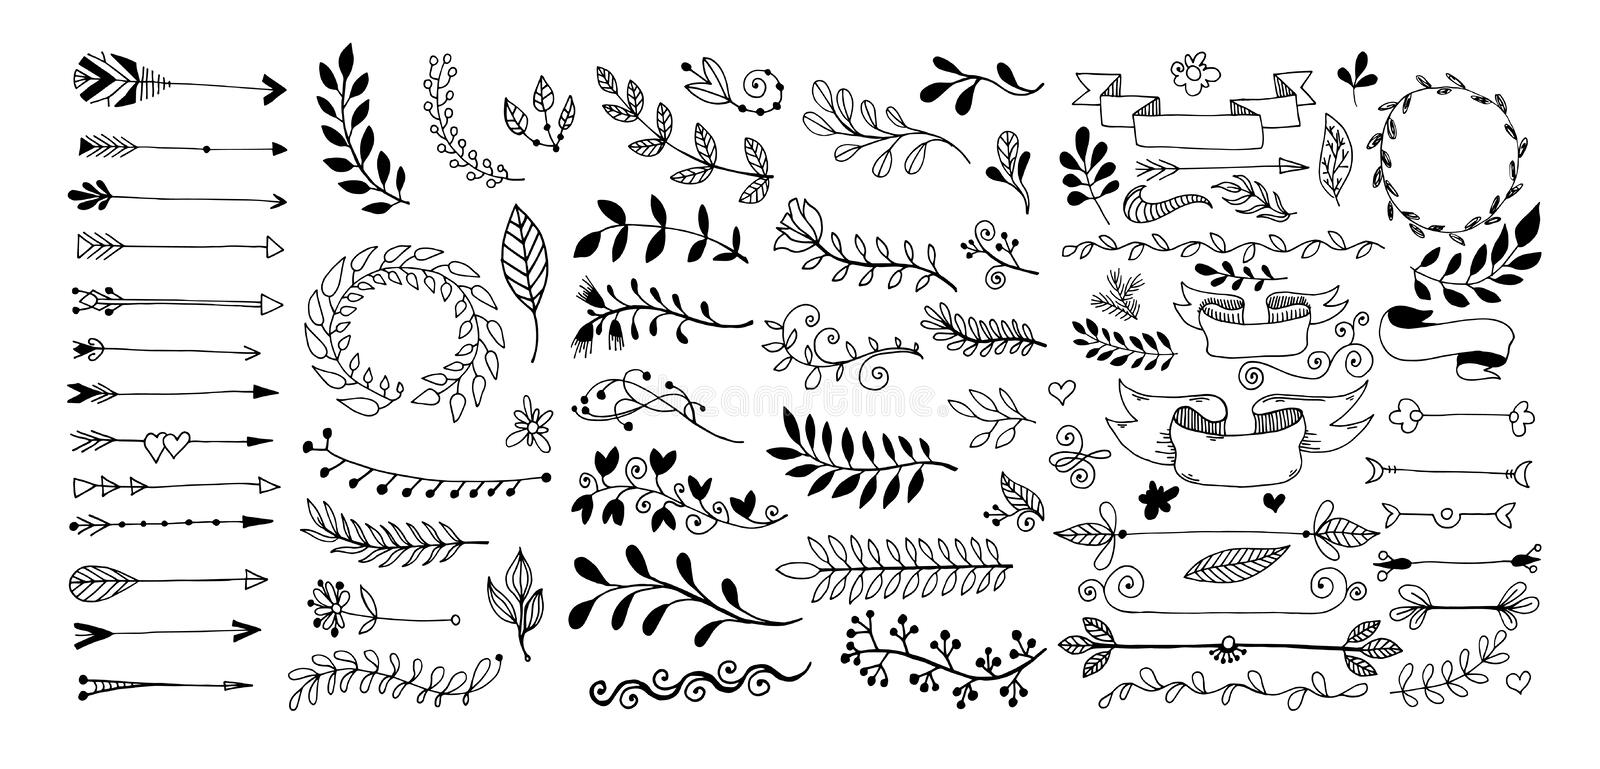 Set of hand drawing page dividers borders and arrow. Doodle floral design elements, vector illustration collection royalty free illustration